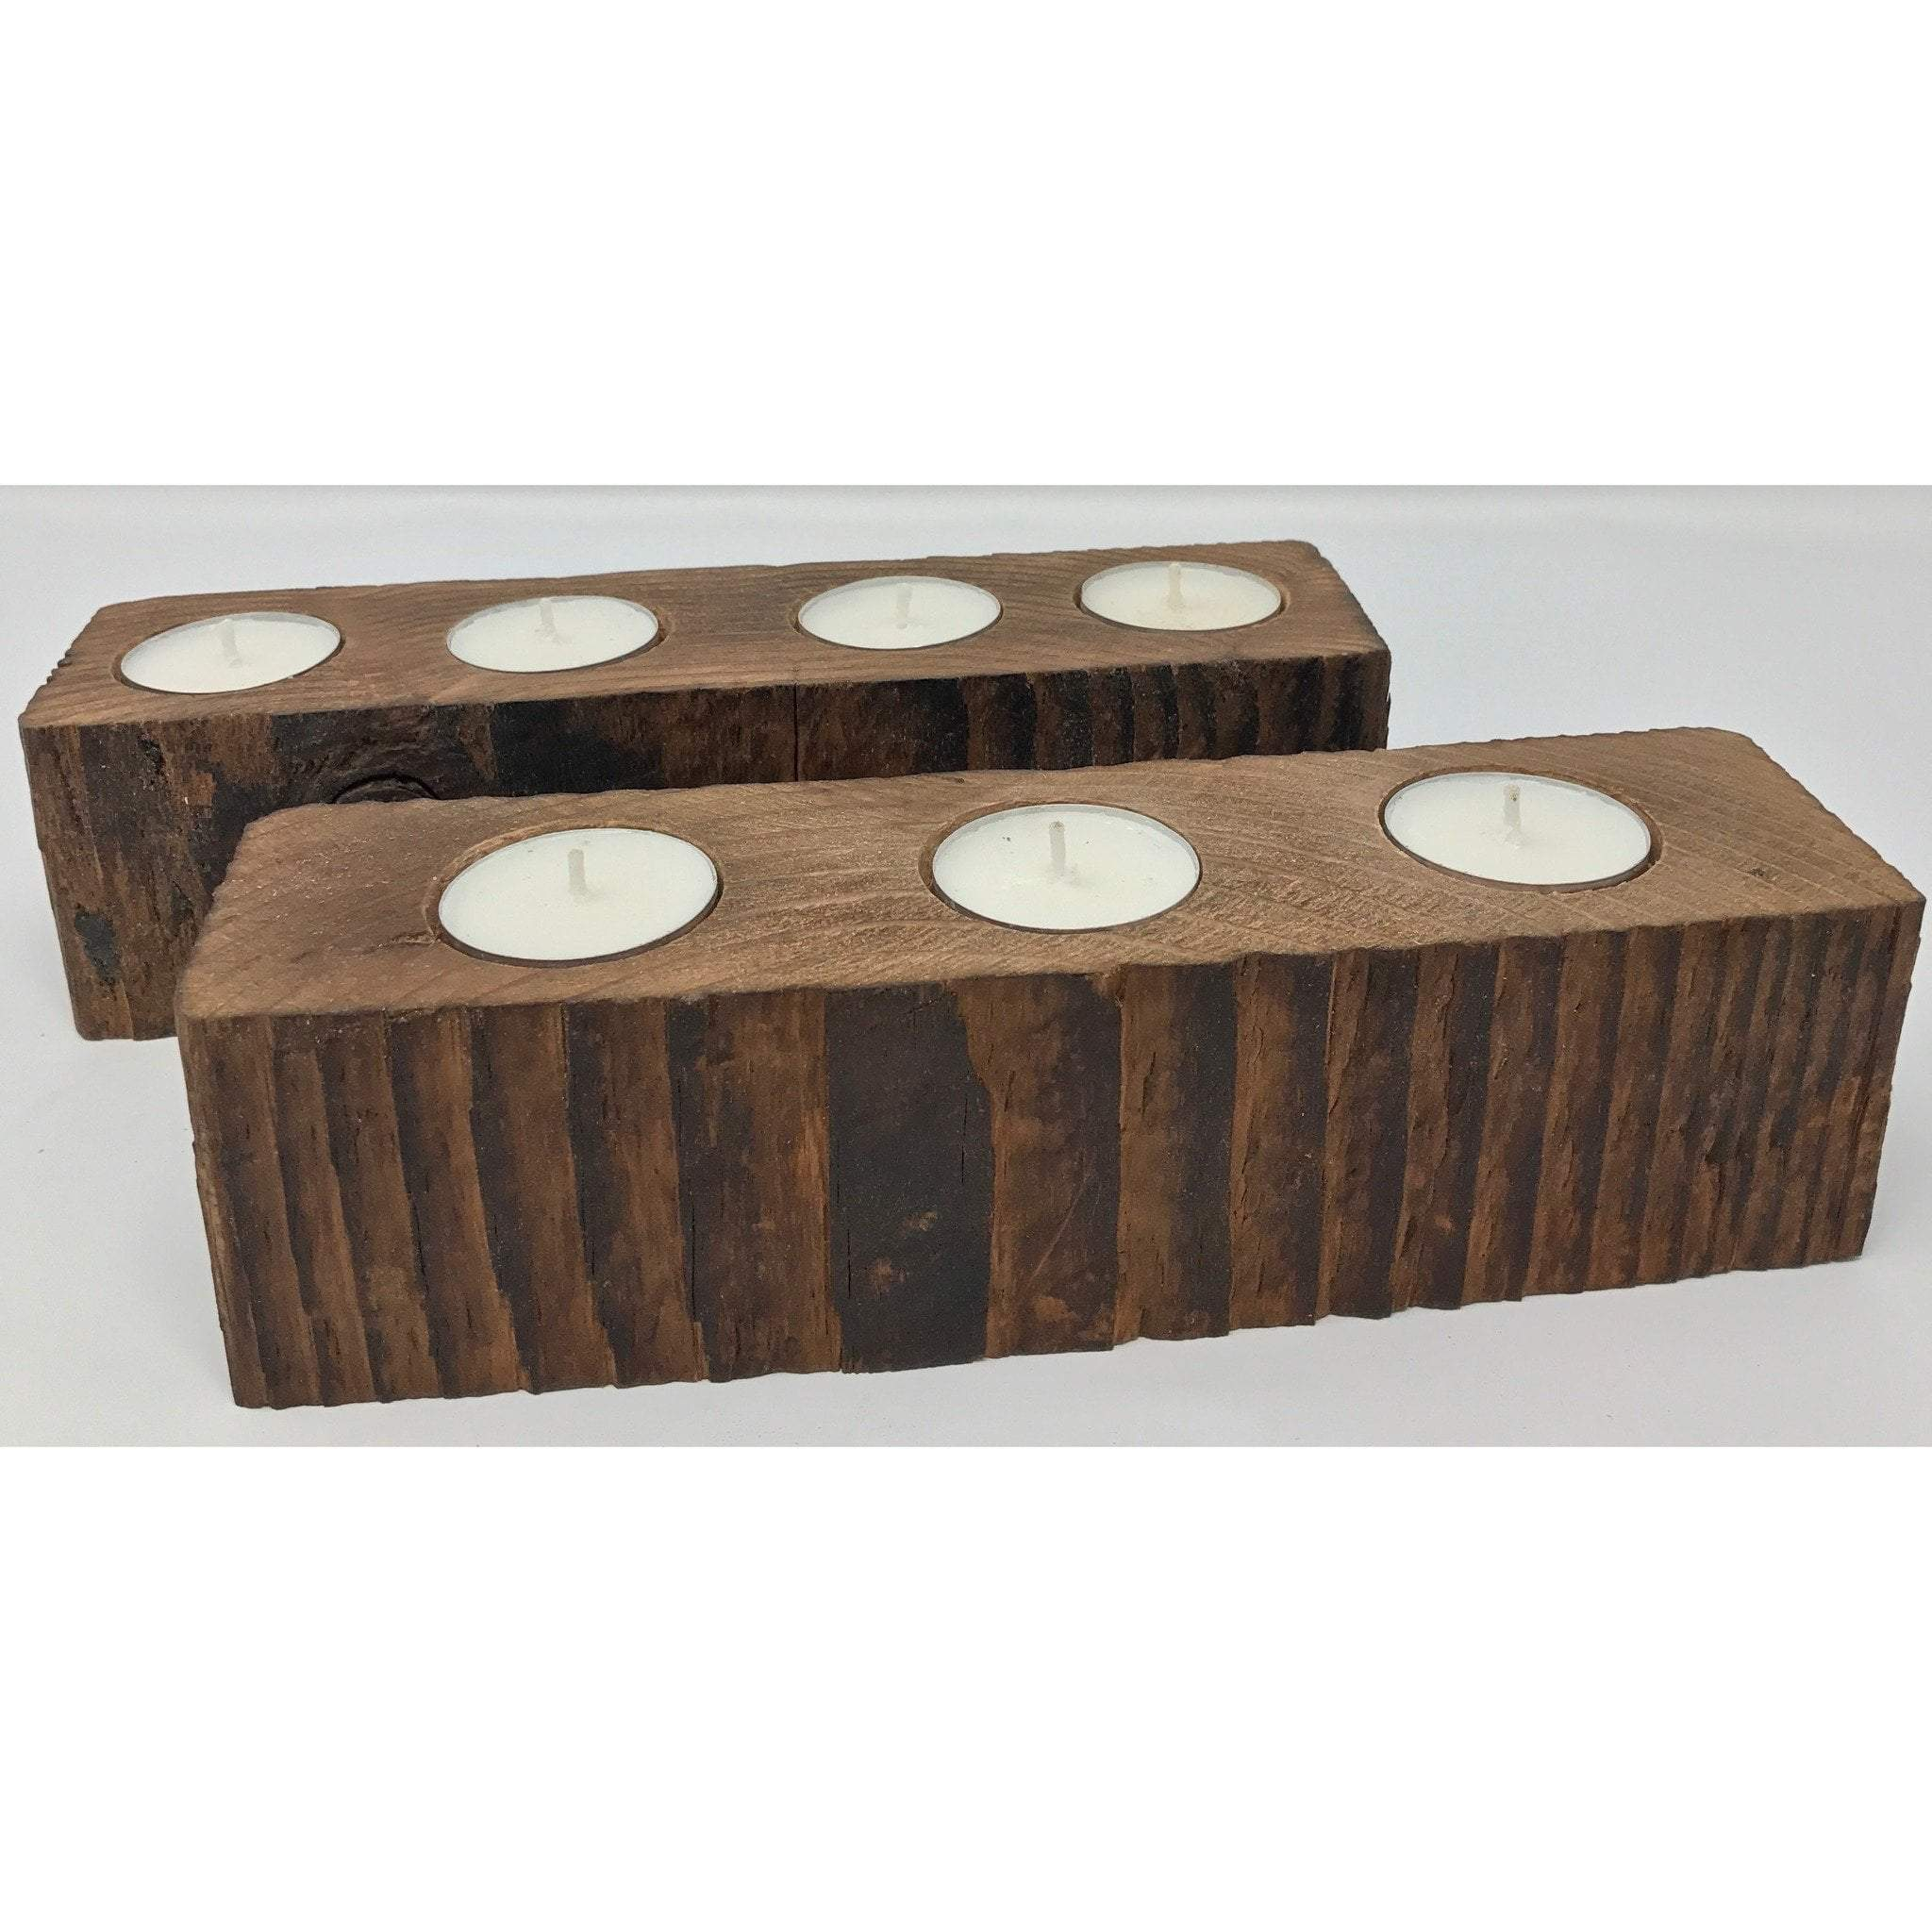 Home Decor Reclaimed Wood Candle Holders